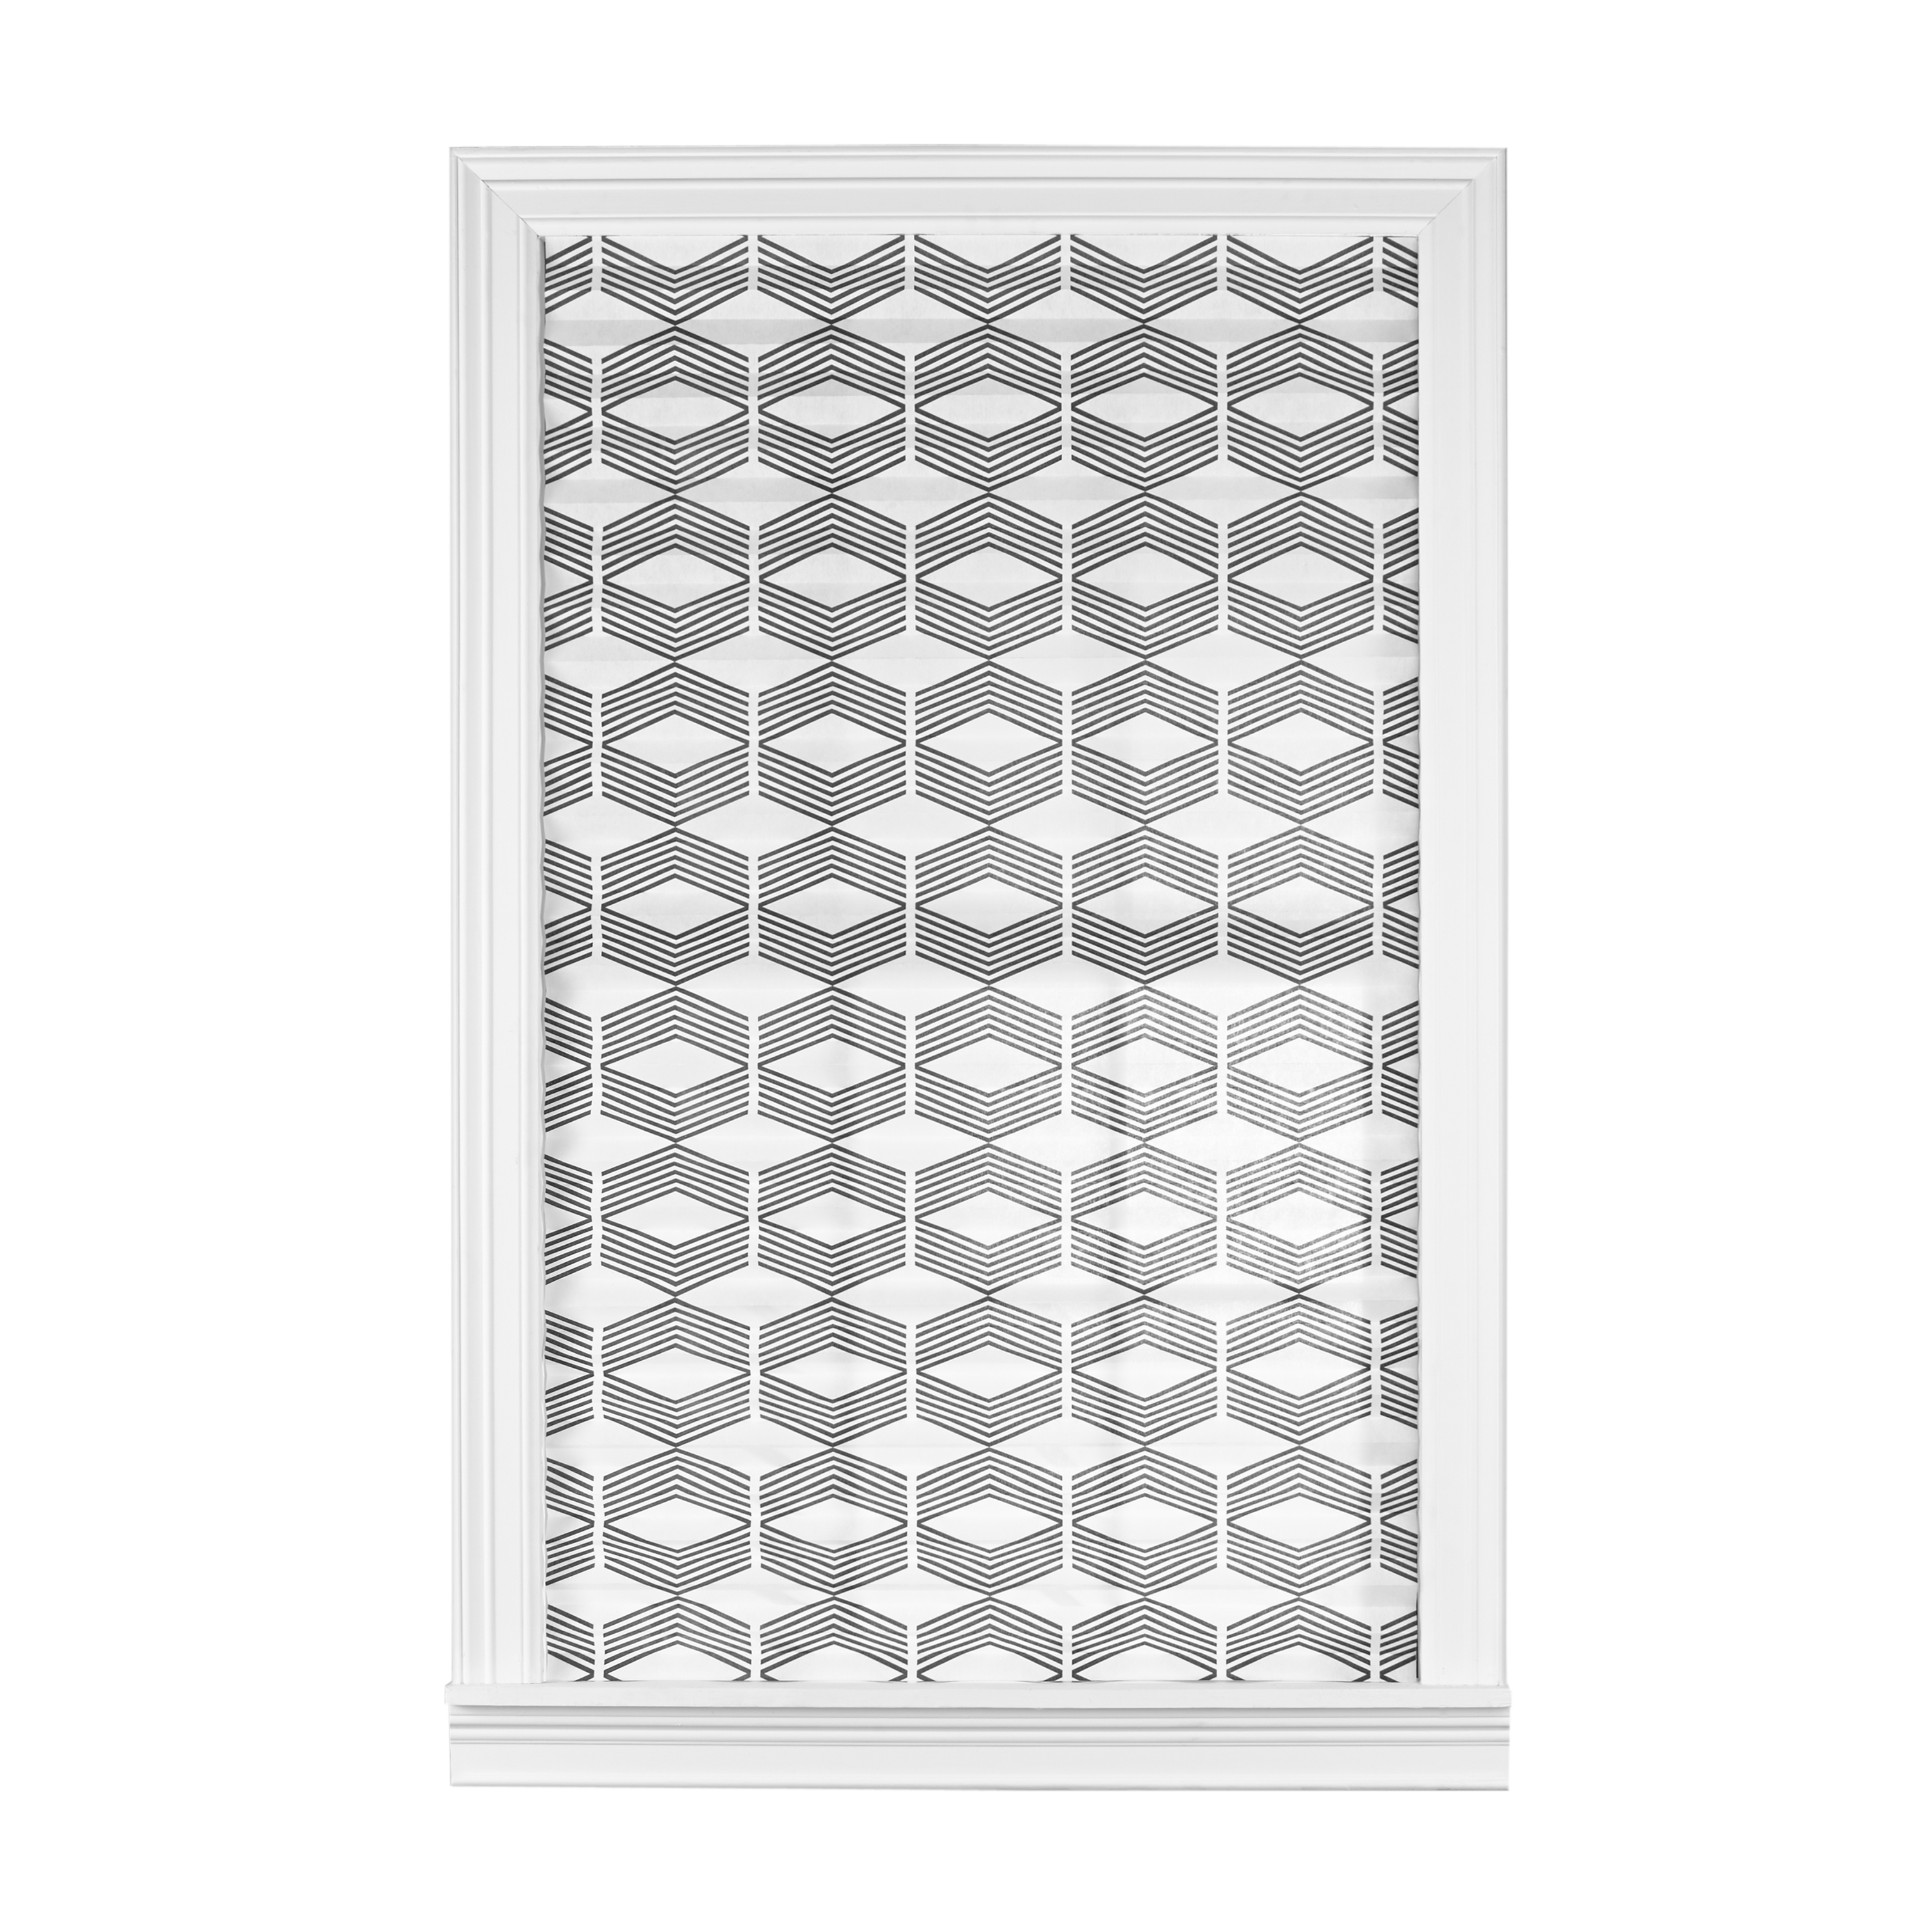 """Mainstays Light Filtering Pleated Window Shade, Geometric, White with Black, 36""""x72"""""""